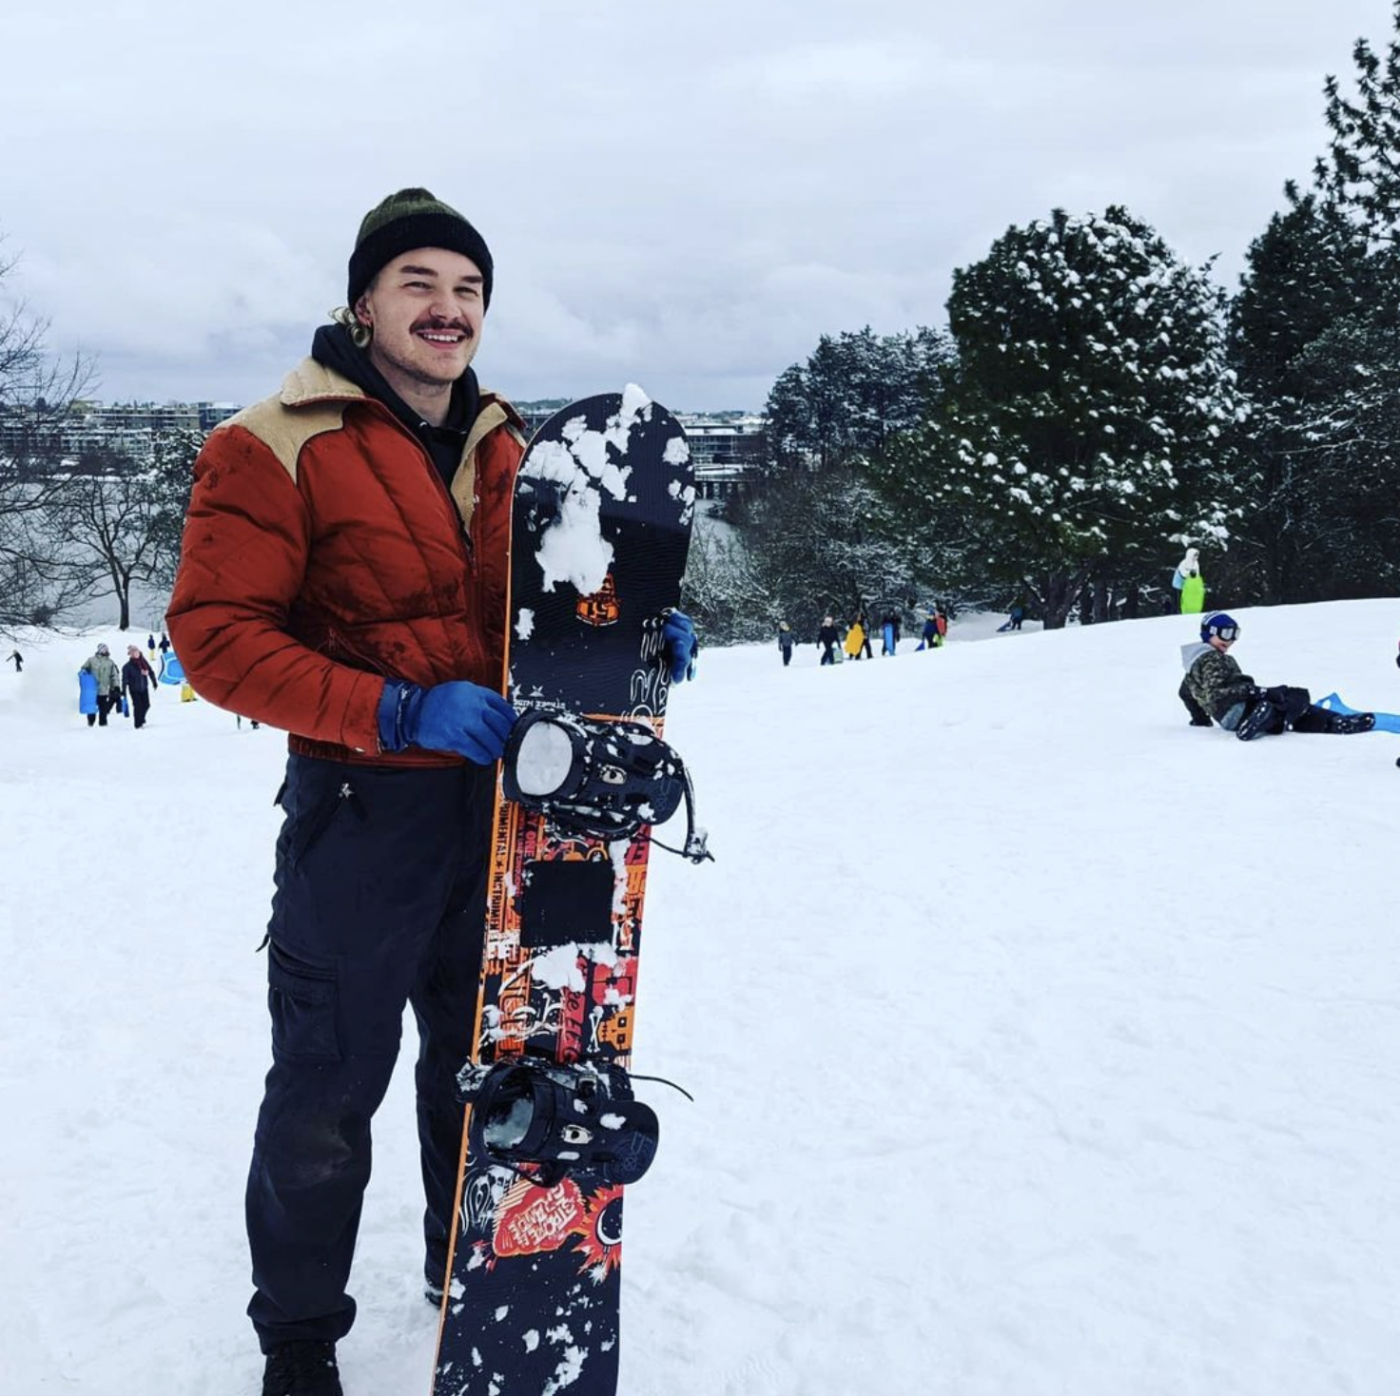 Sascha standing with their snowboard on a snowy hill in Banfield Park